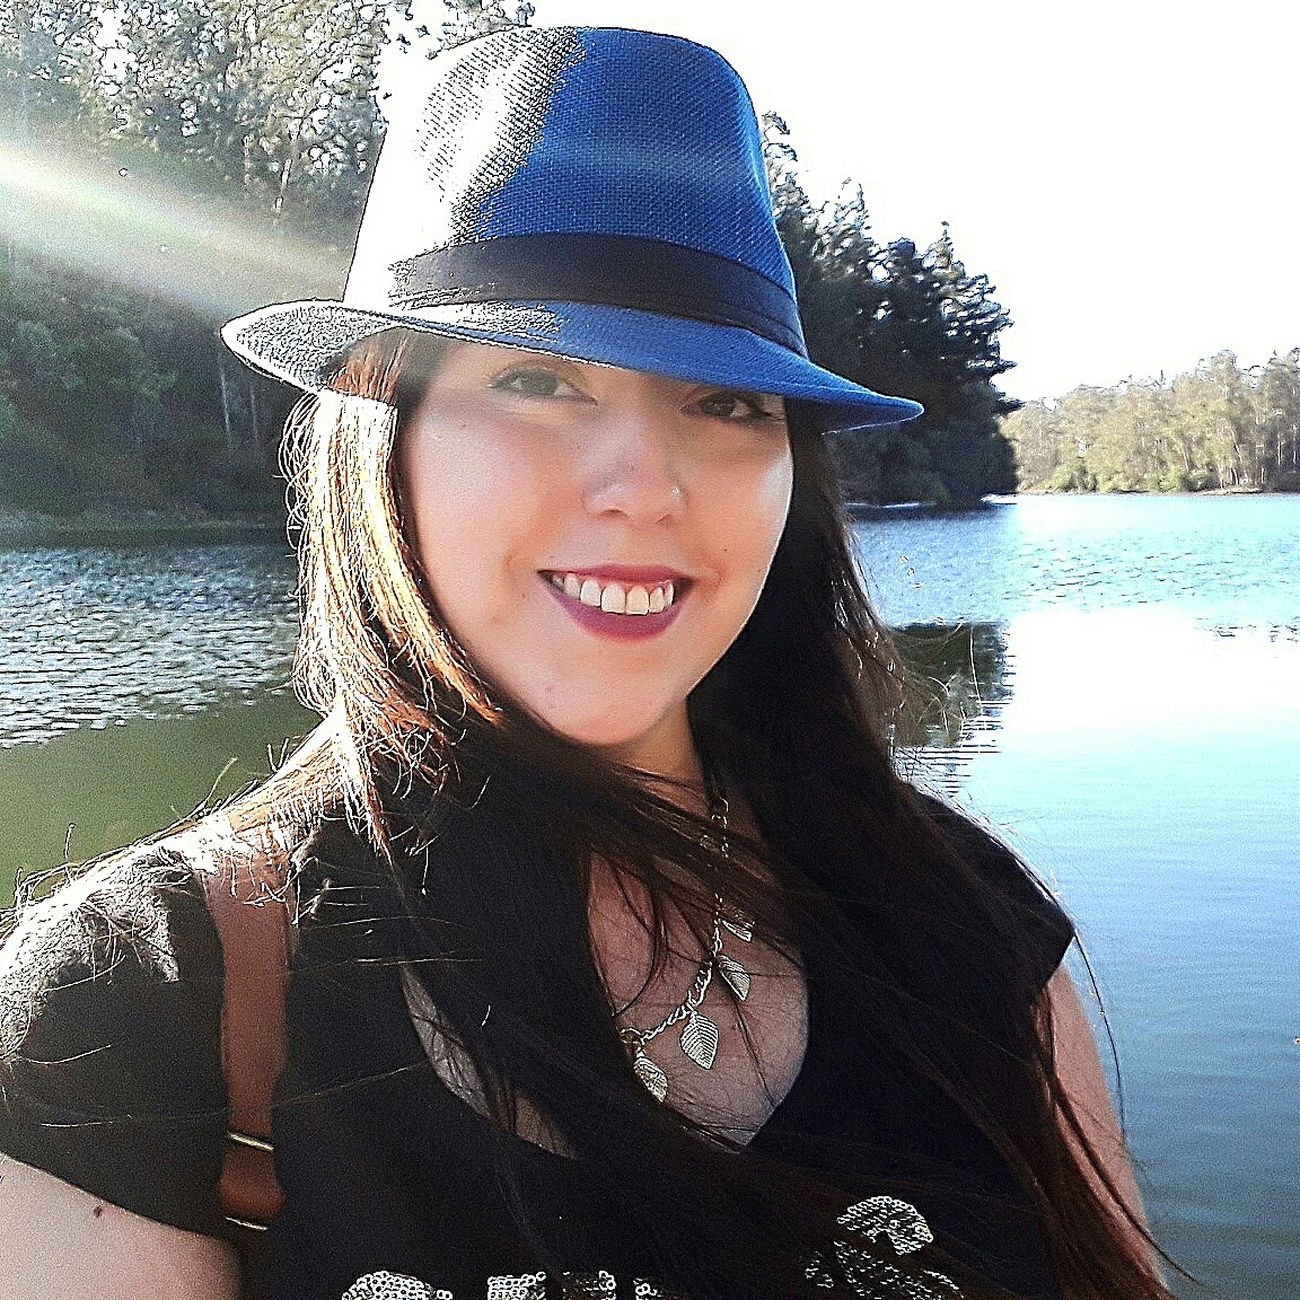 👒. Smiling Young Adult Happiness Water Portrait Adults Only Cheerful Headshot Young Women One Person People One Young Woman Only Adult Close-up Day Only Women Human Body Part One Woman Only Outdoors Nature Nature Paisaje Chilena Photo♡ Chile